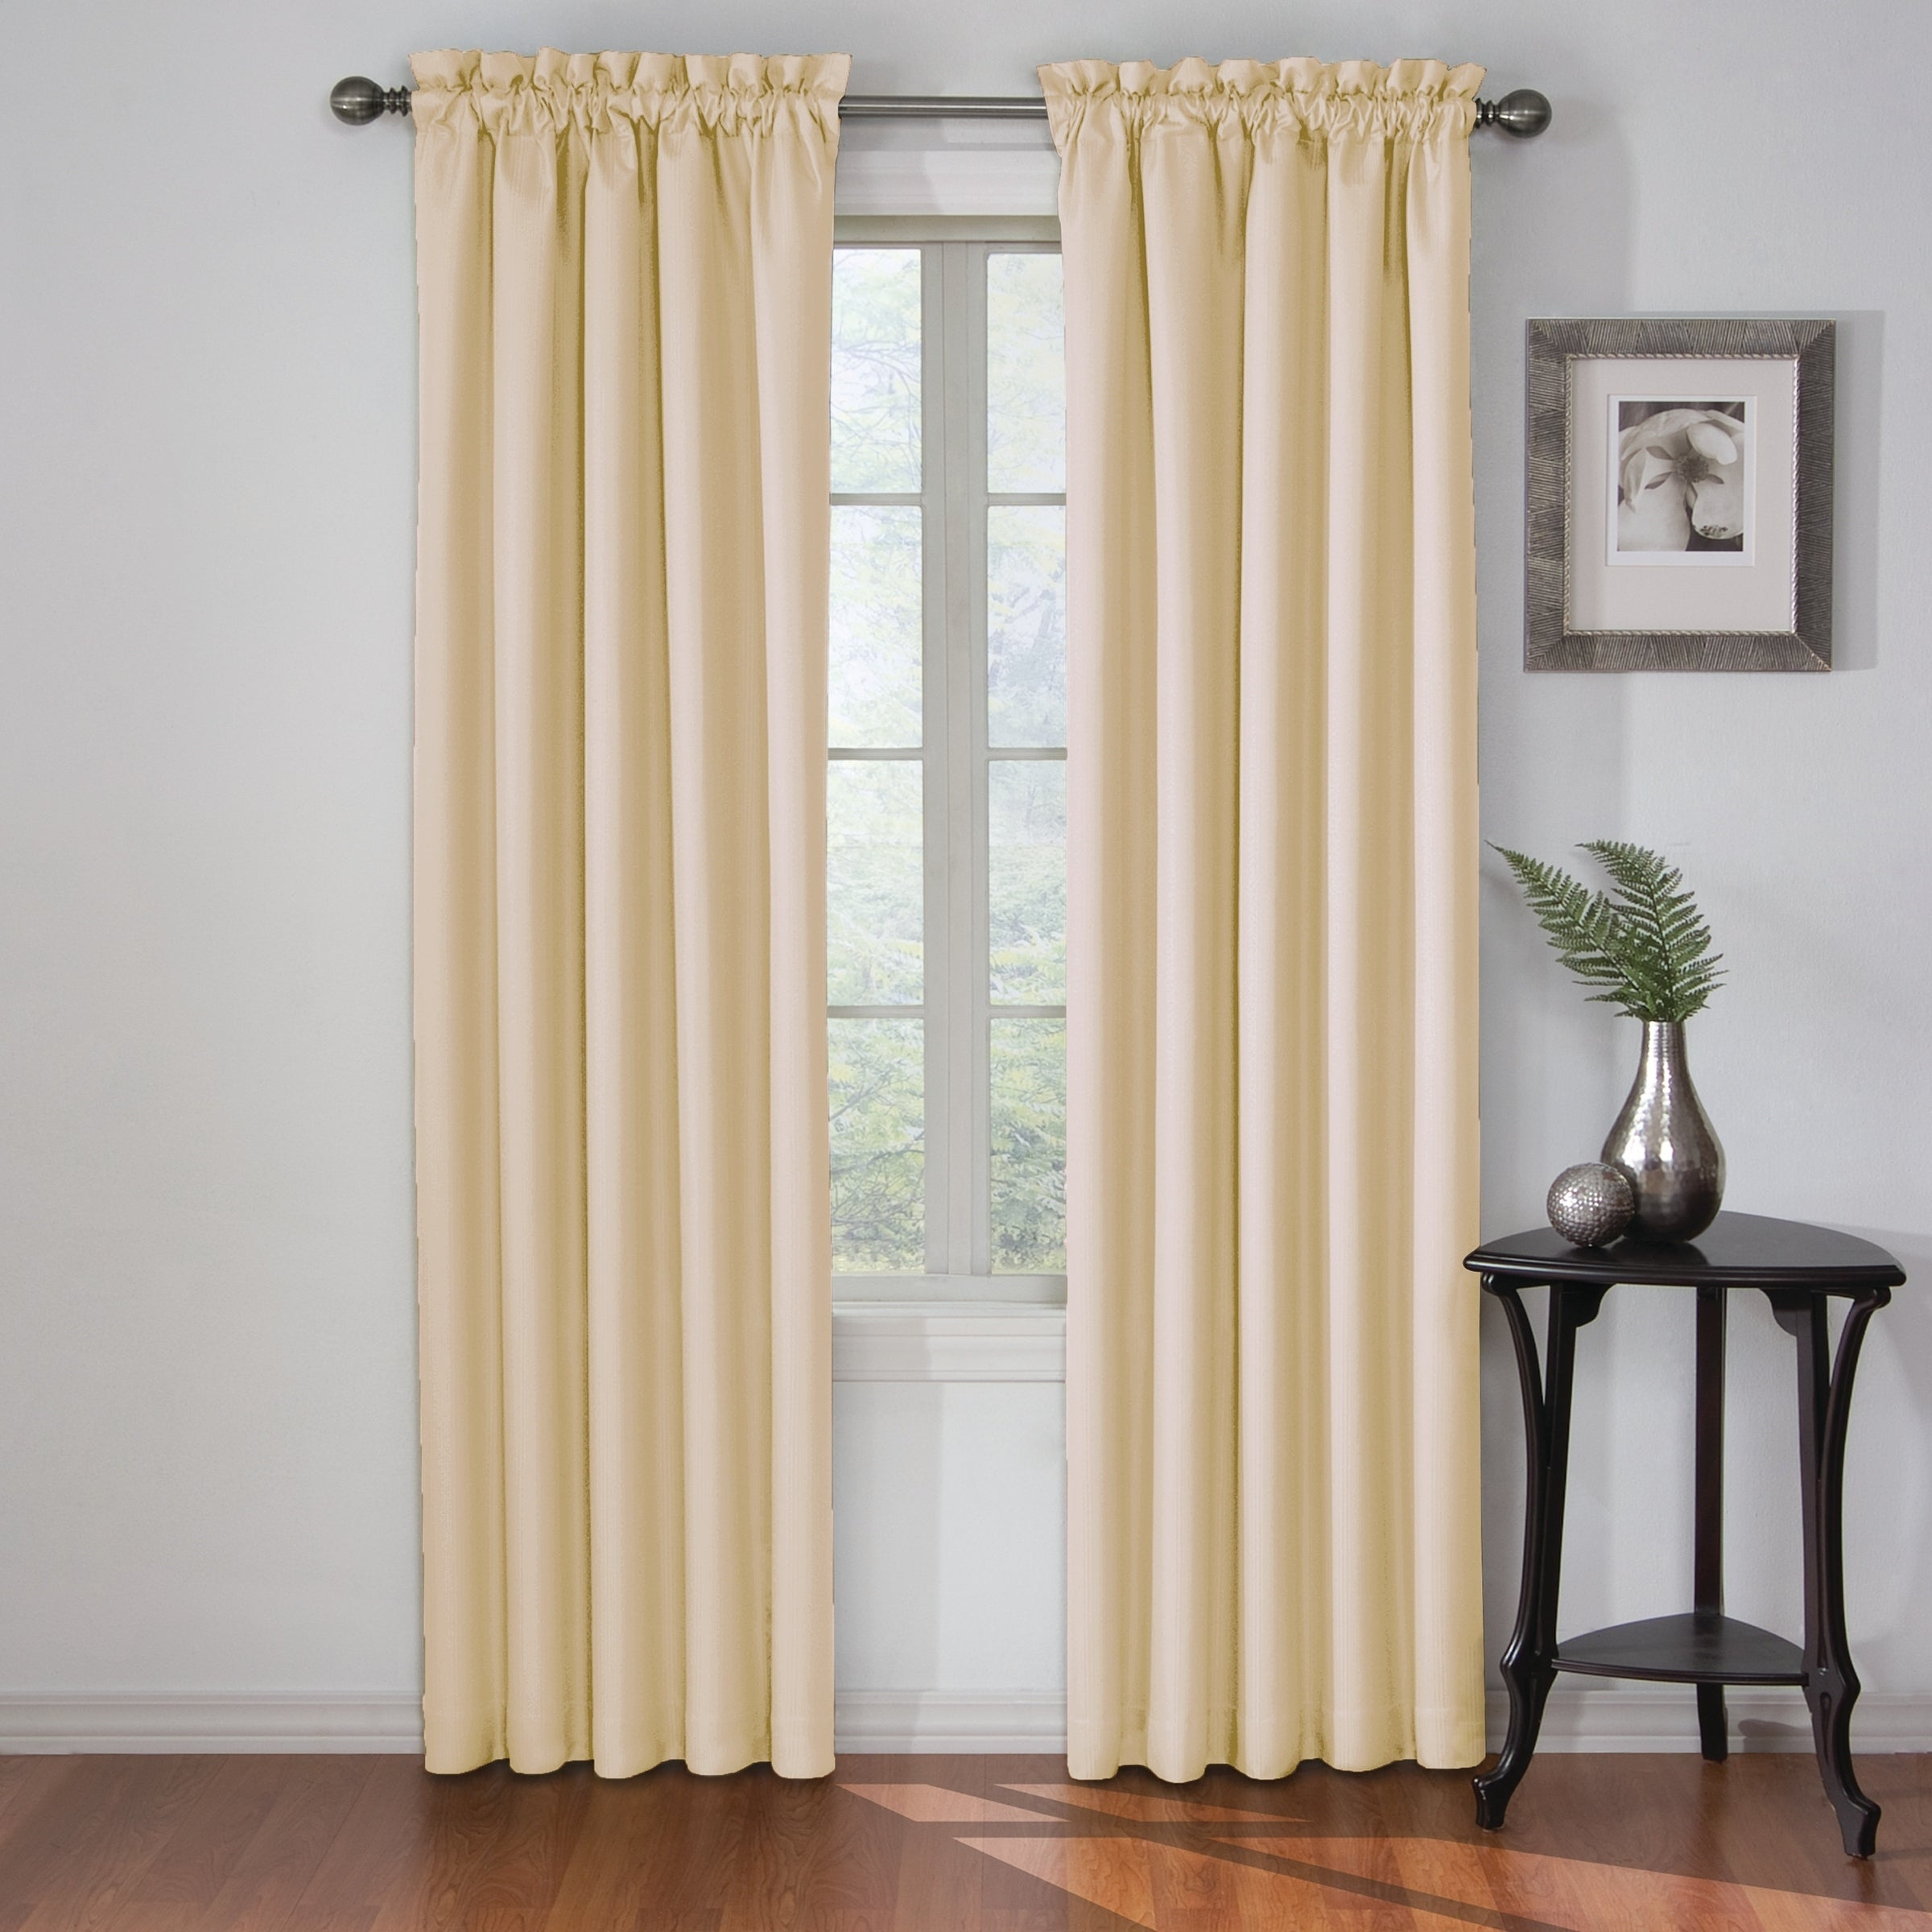 Eclipse Corinne Thermaback Curtain Panel With Regard To Eclipse Corinne Thermaback Curtain Panels (View 6 of 20)